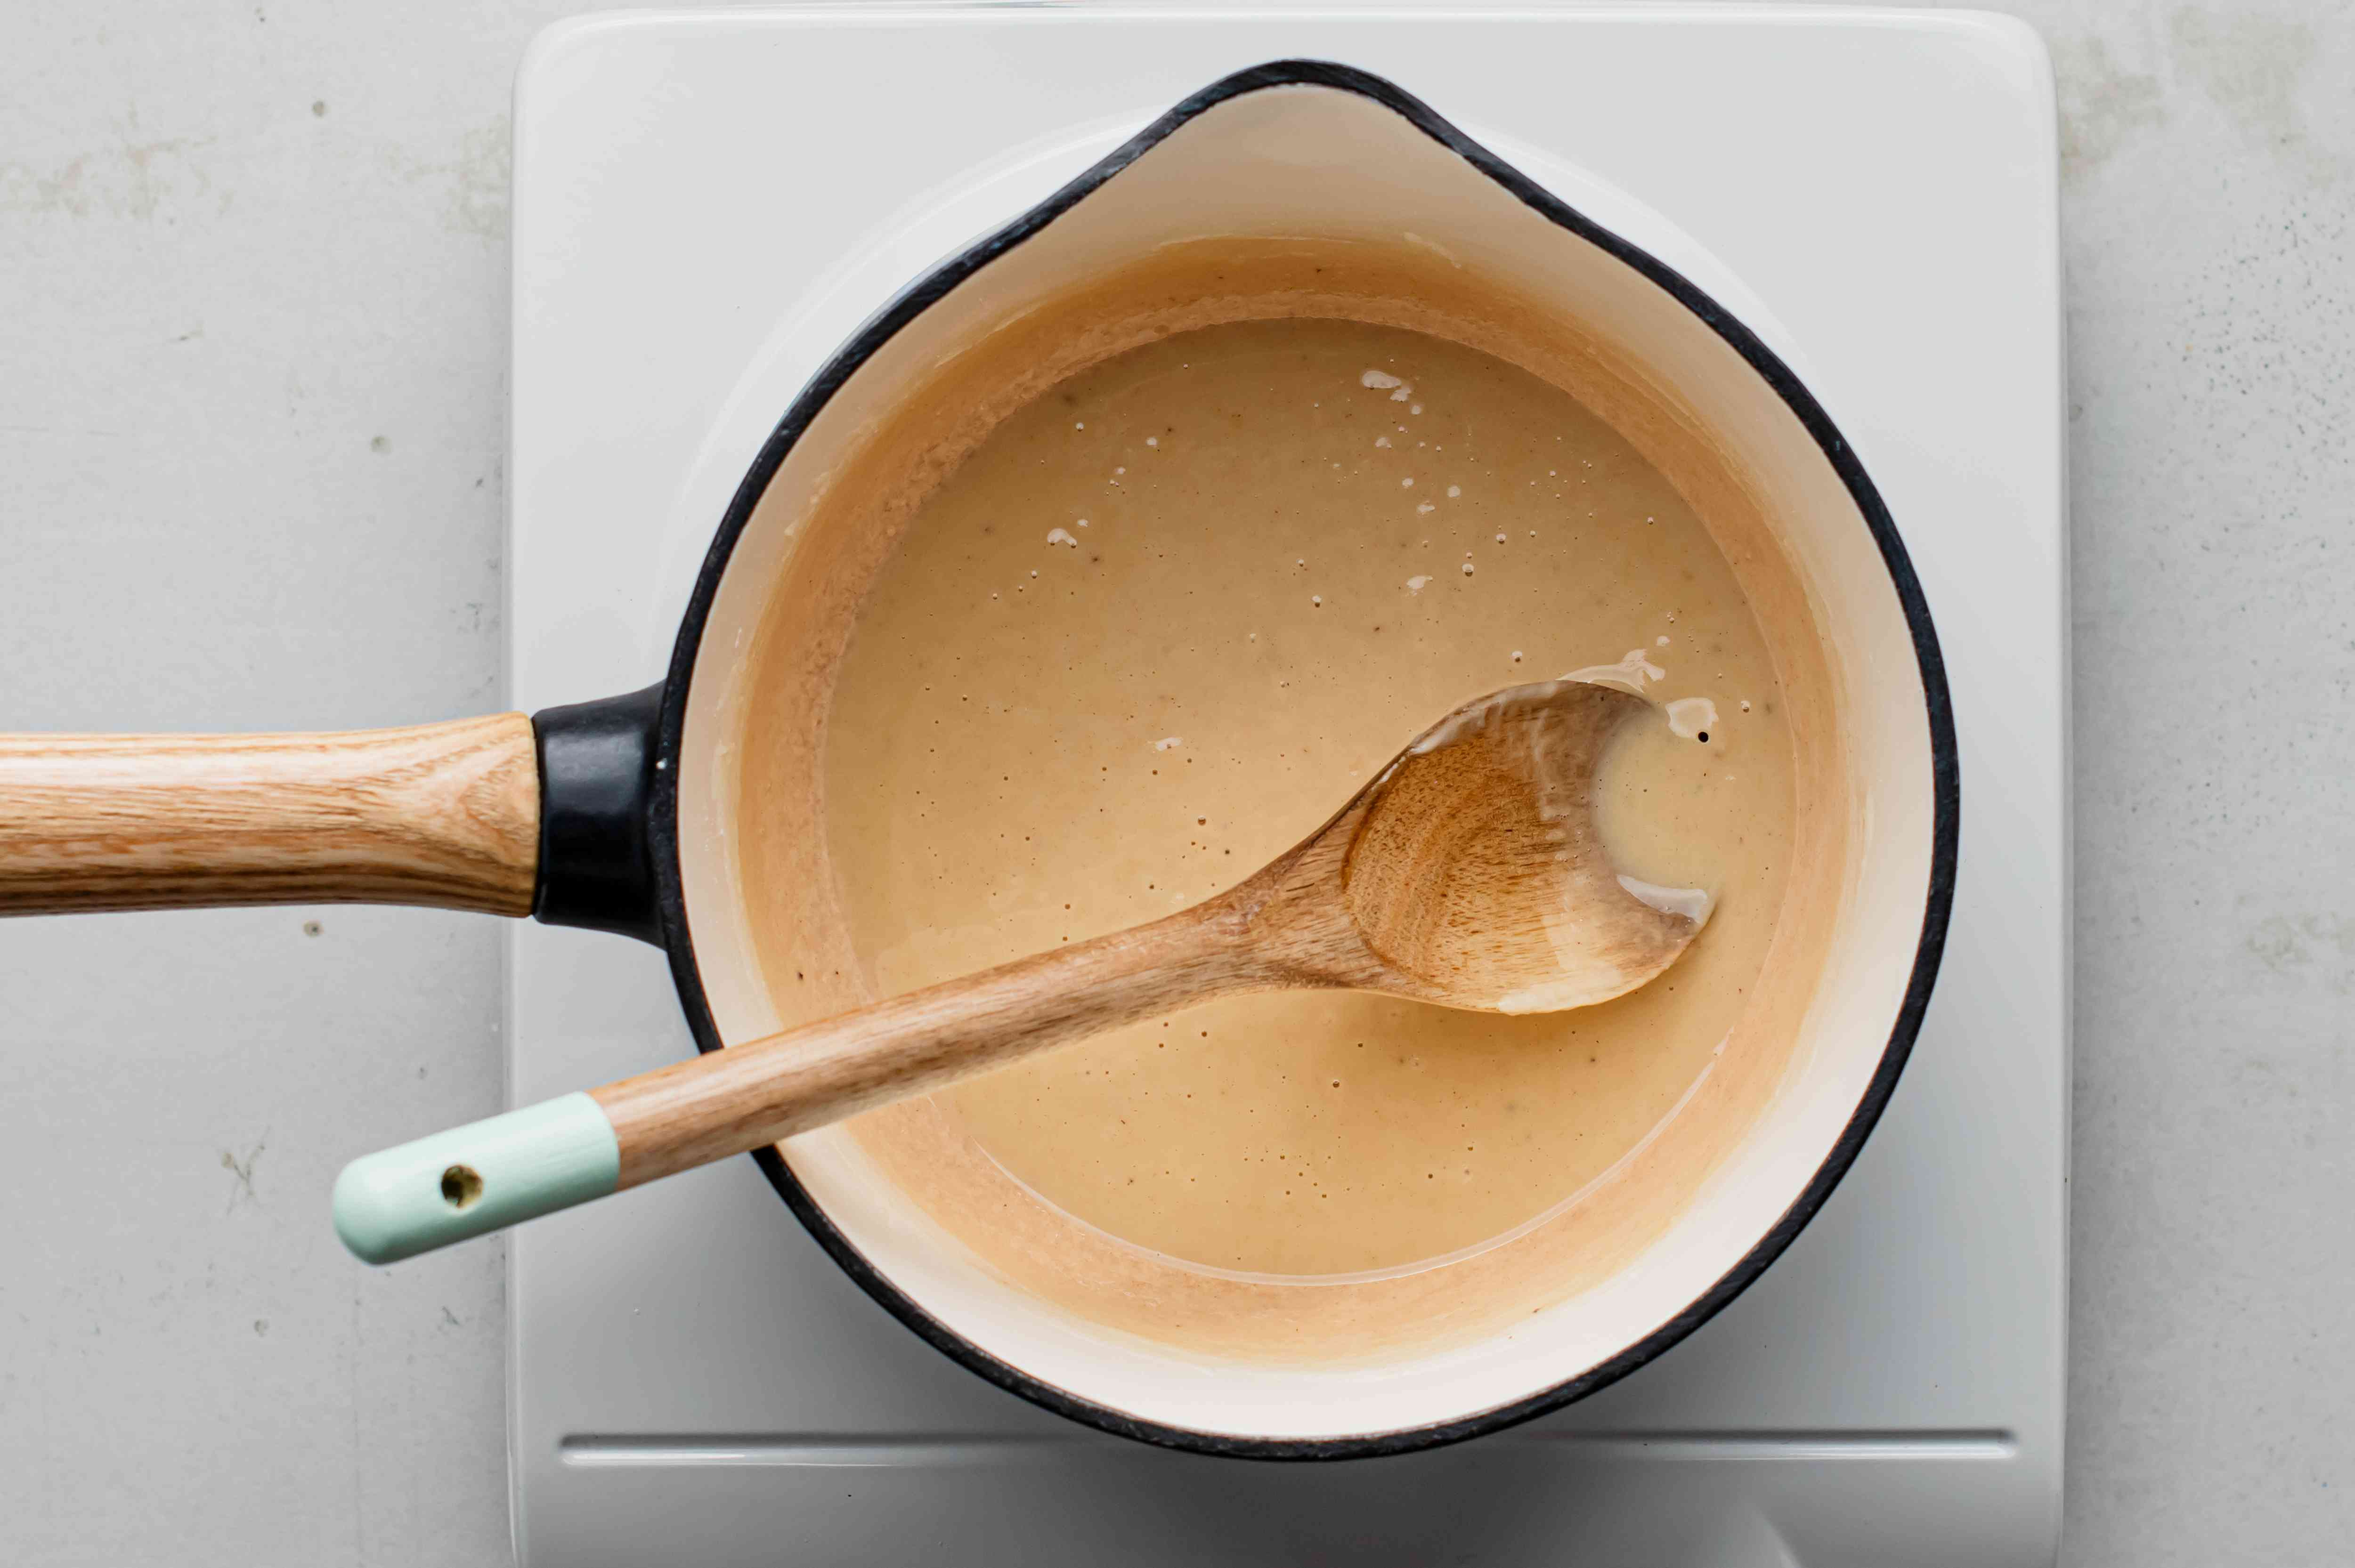 Light brown roux in a saucepan with a wooden spoon